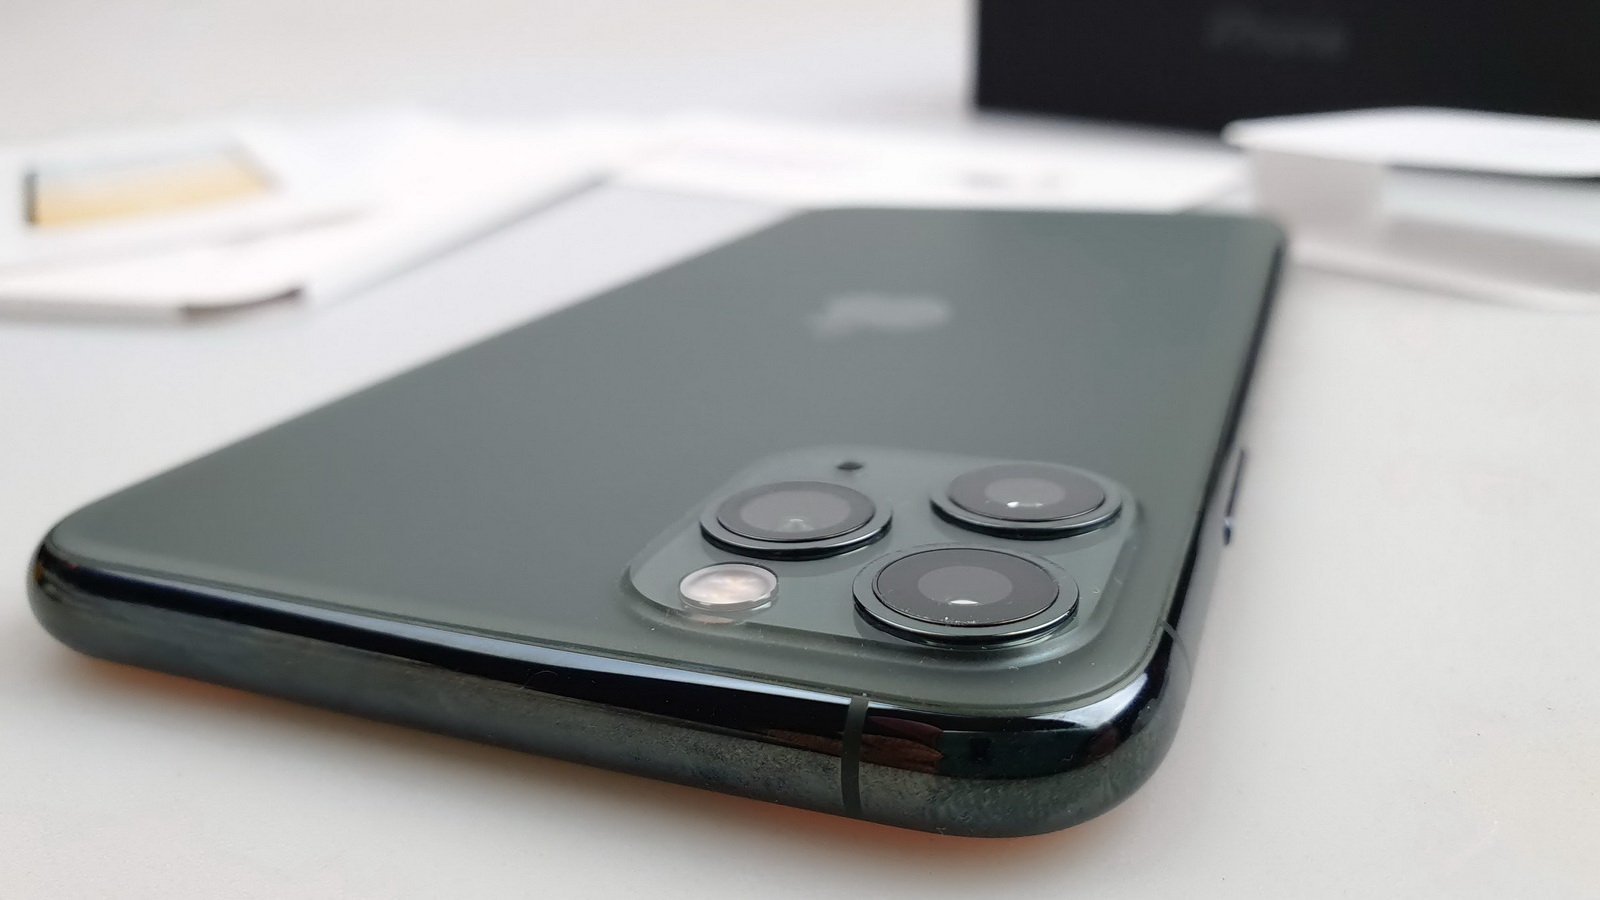 Apple iPhone 11 Pro Max: Hardware mai degrabă optimizat decât exagerat